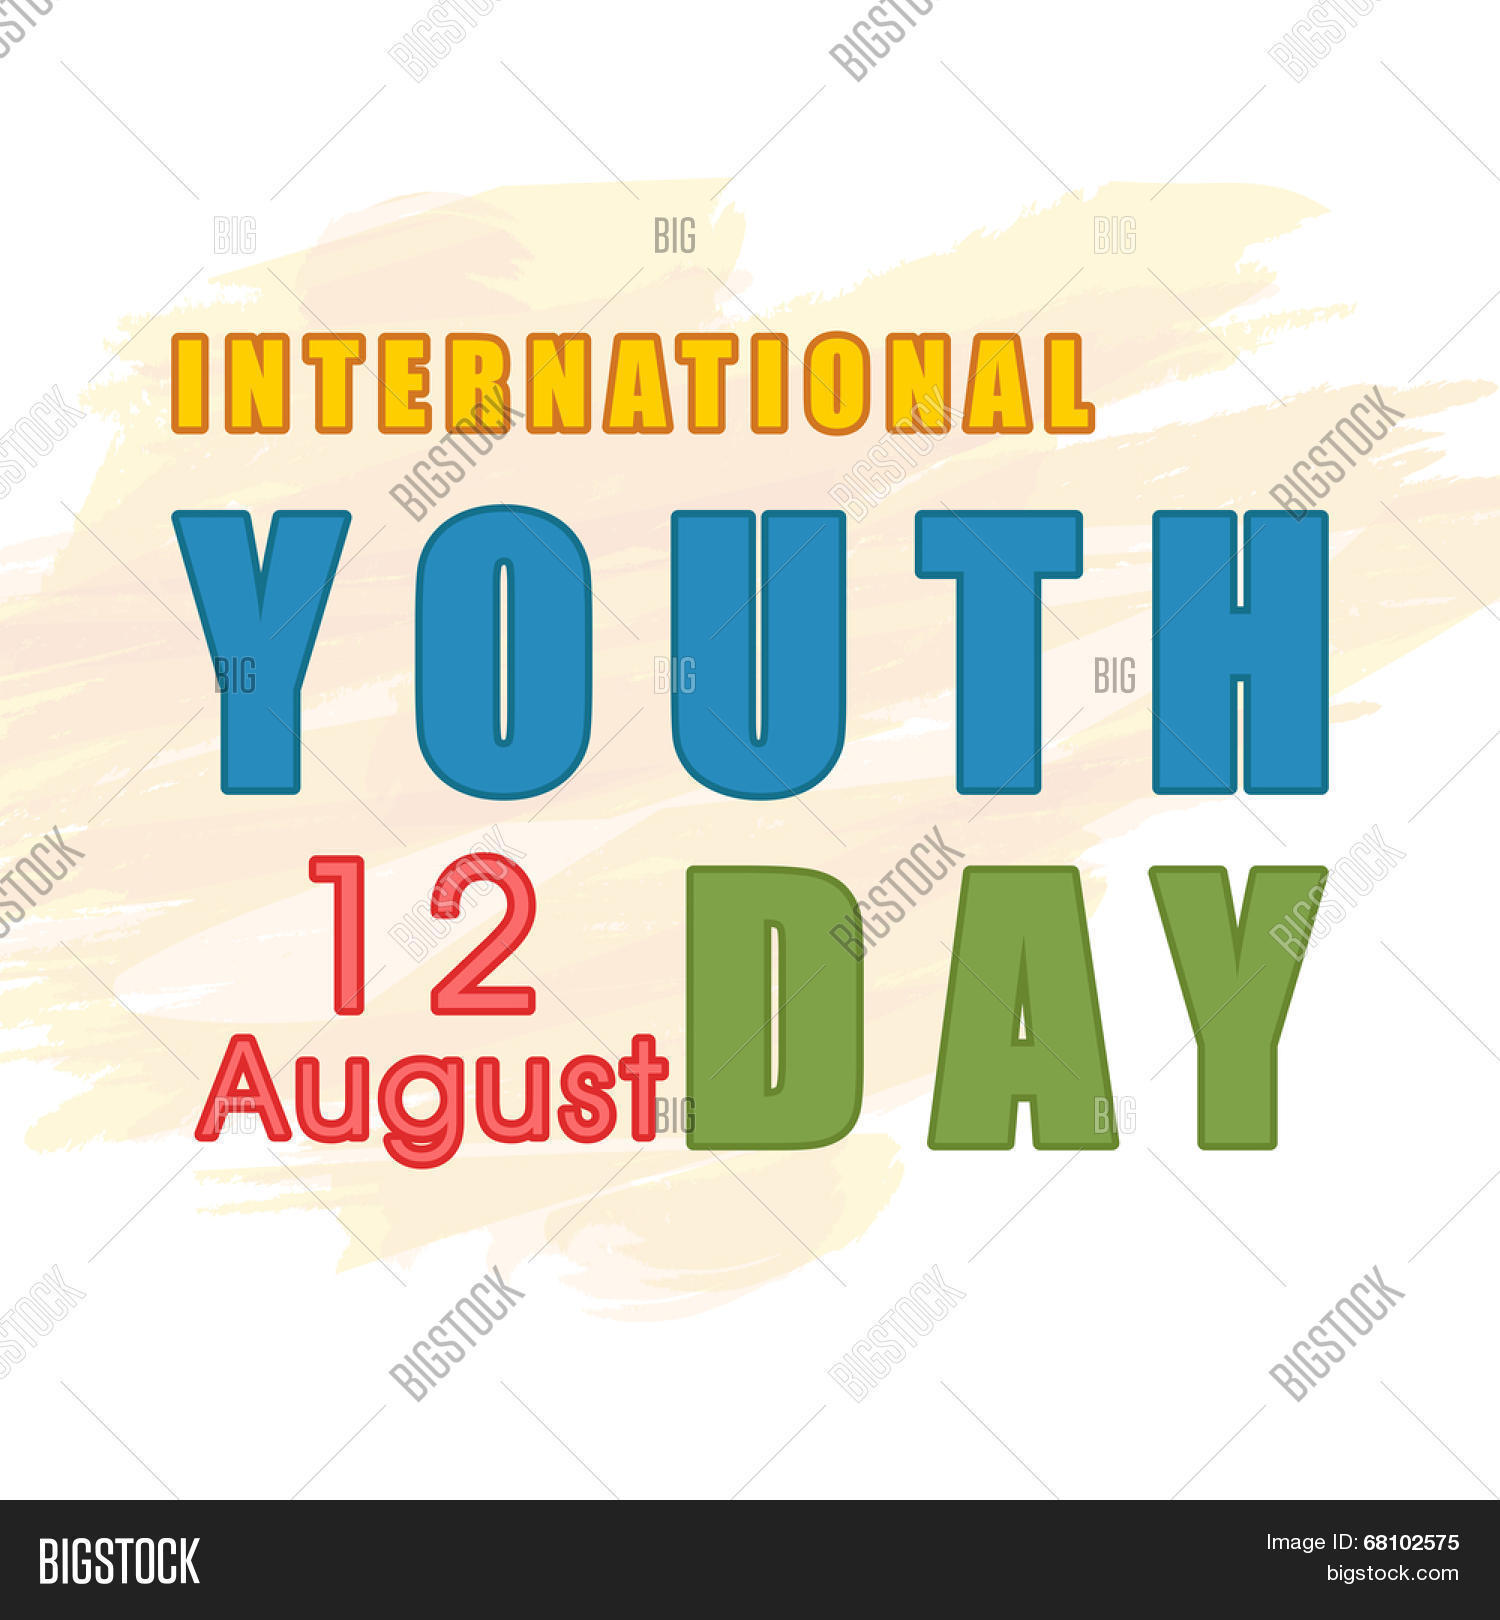 Poster design for youth - Stylish Poster Banner Or Flyer Design With Colorful Text International Youth Day On 12 August